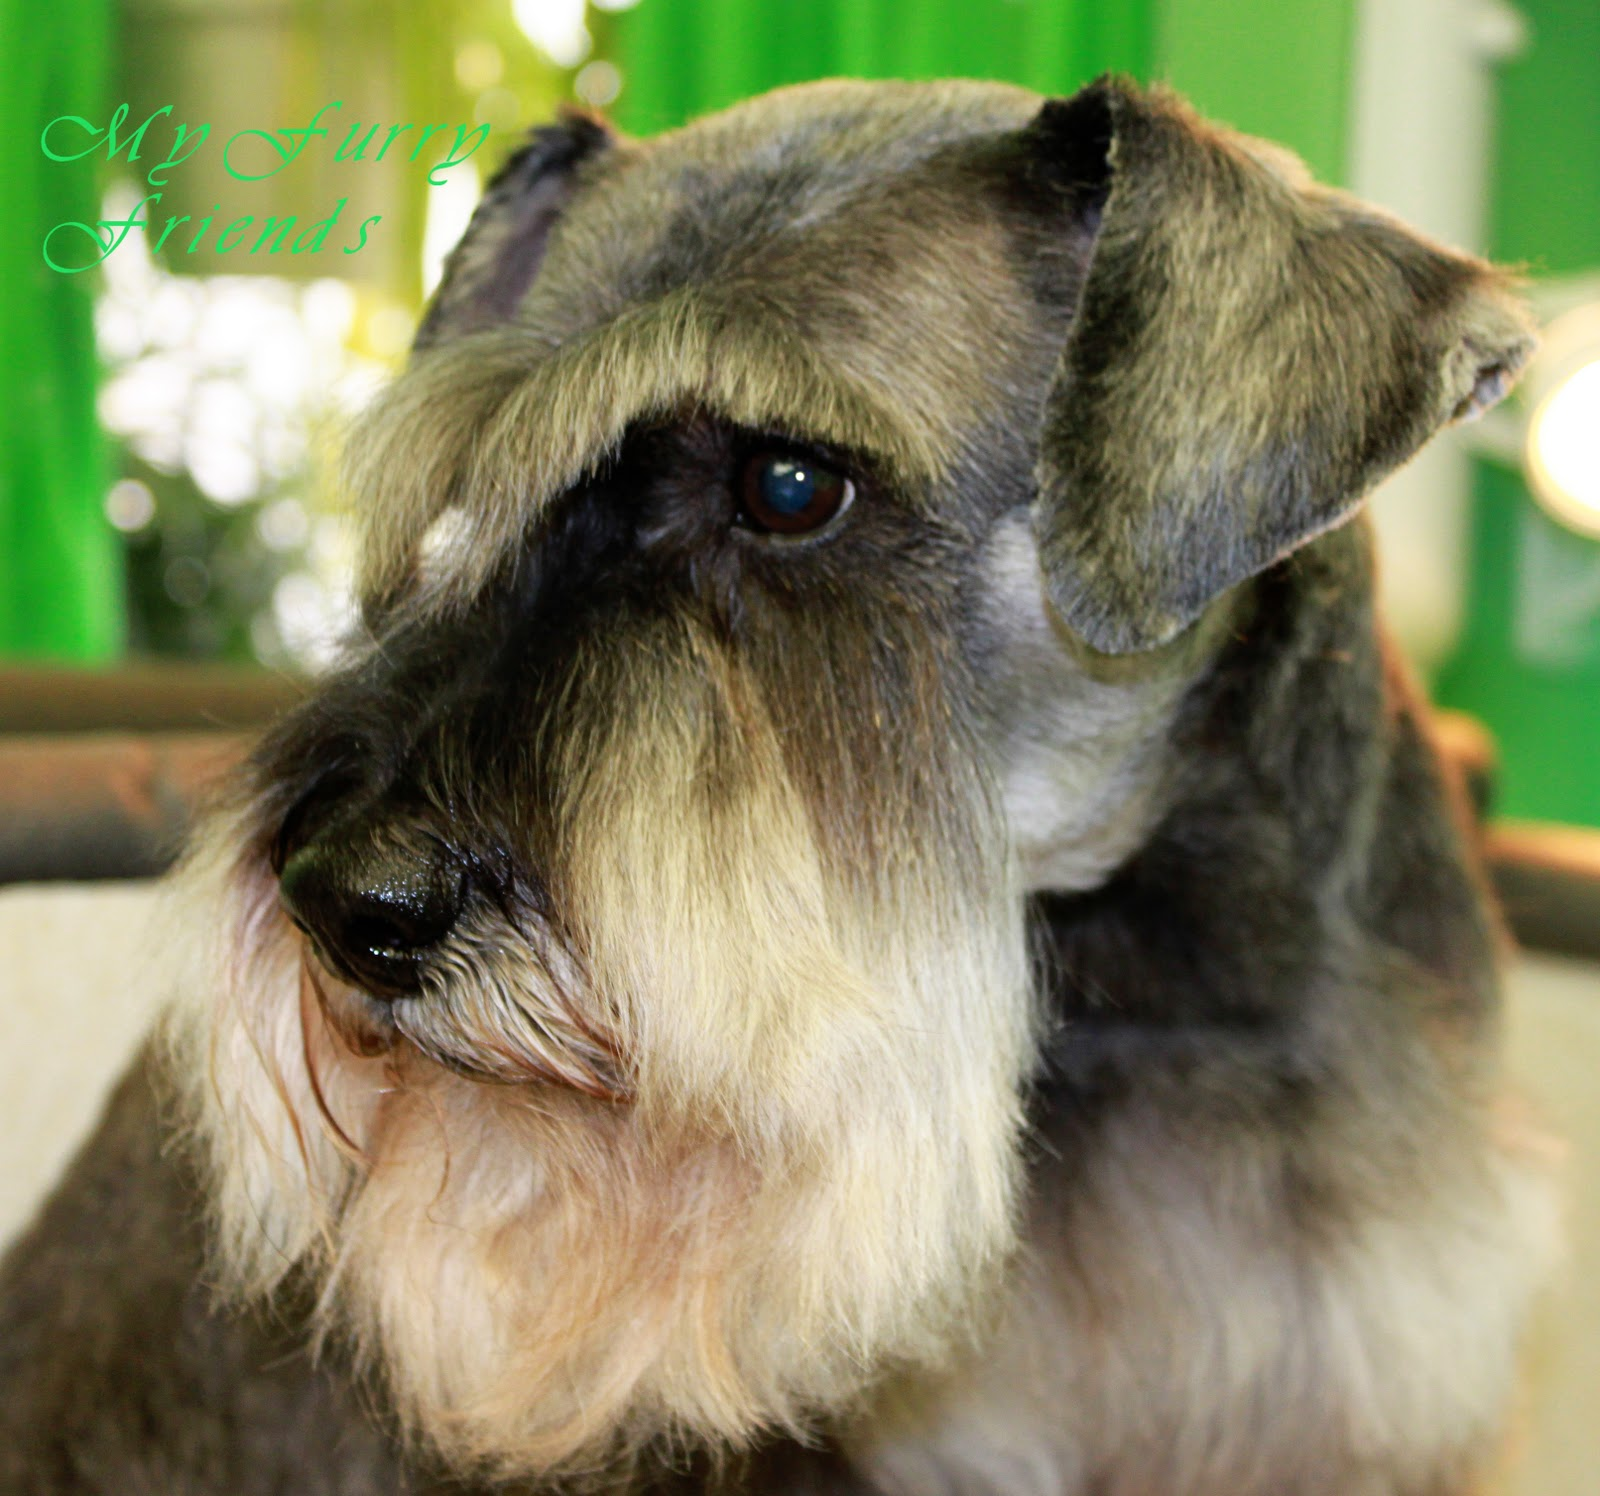 pet grooming: the good, the bad, & the furry: different looks of a